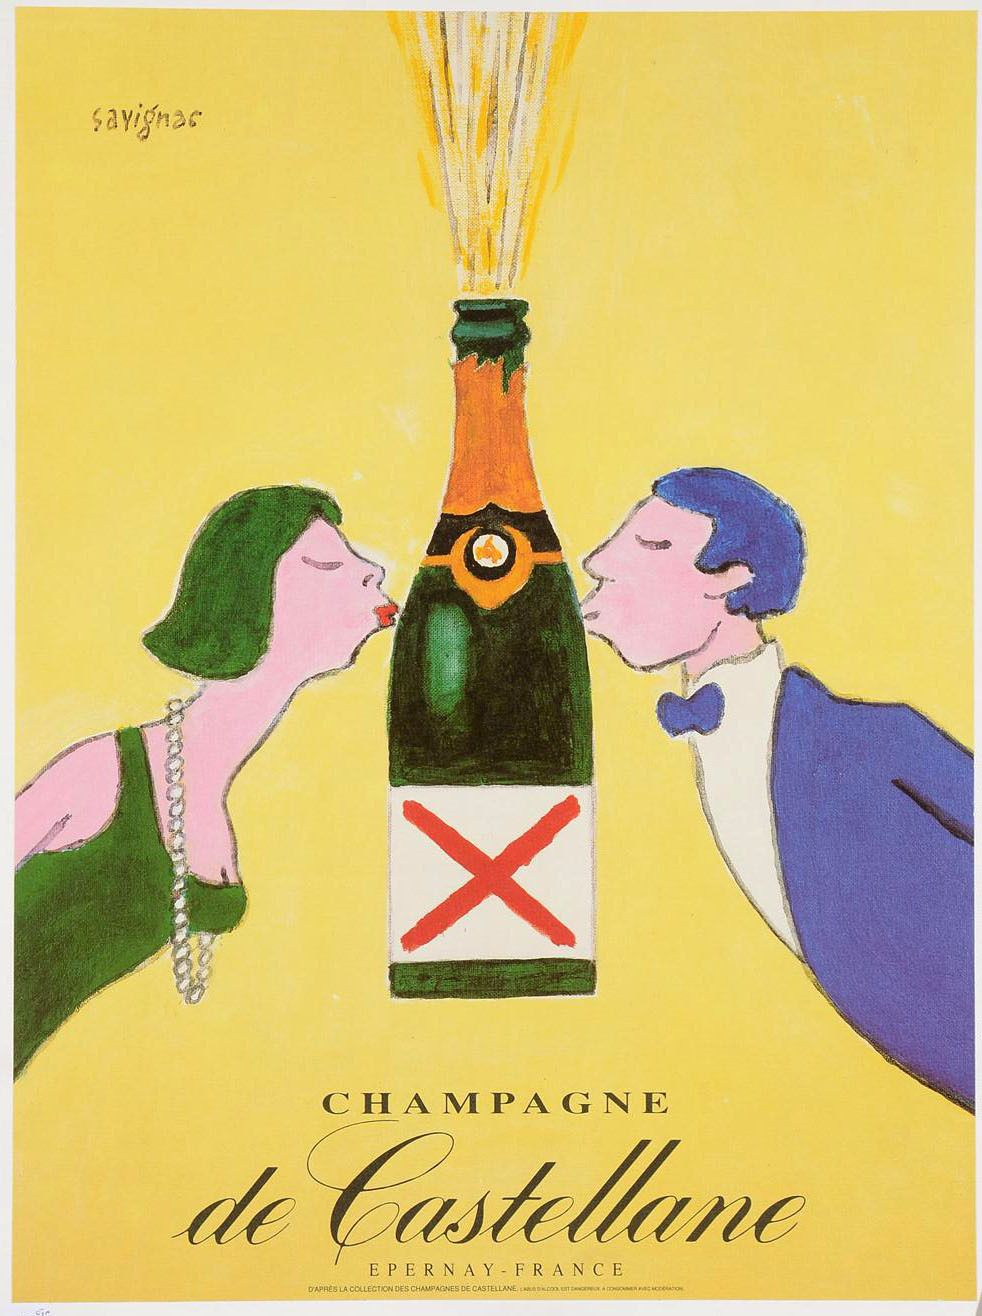 Original Vintage French Poster Champagne De Castellane By Savignac Vintage French Posters Wine Poster Champagne